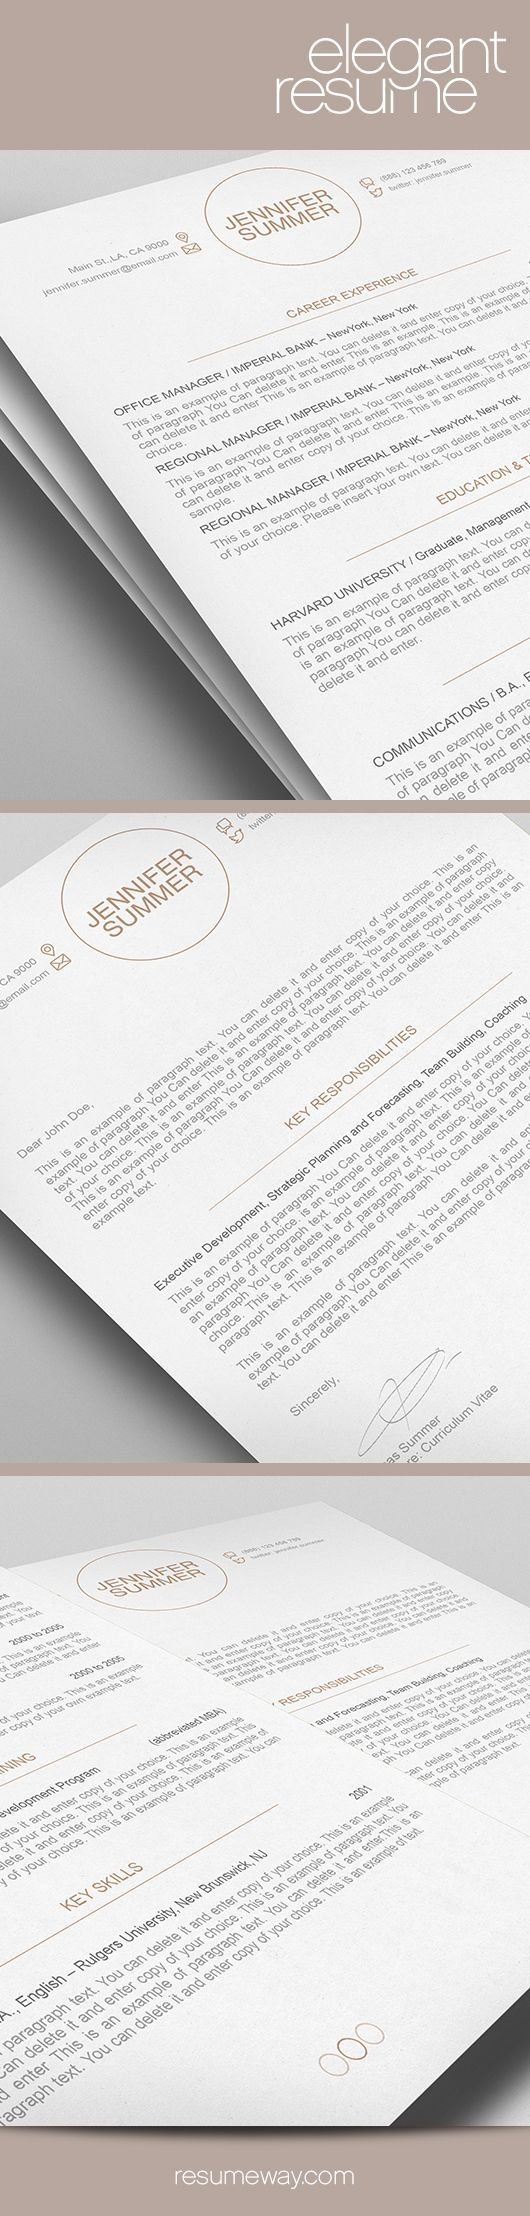 elegant resume template premium line of resume cover letter templates easy edit with